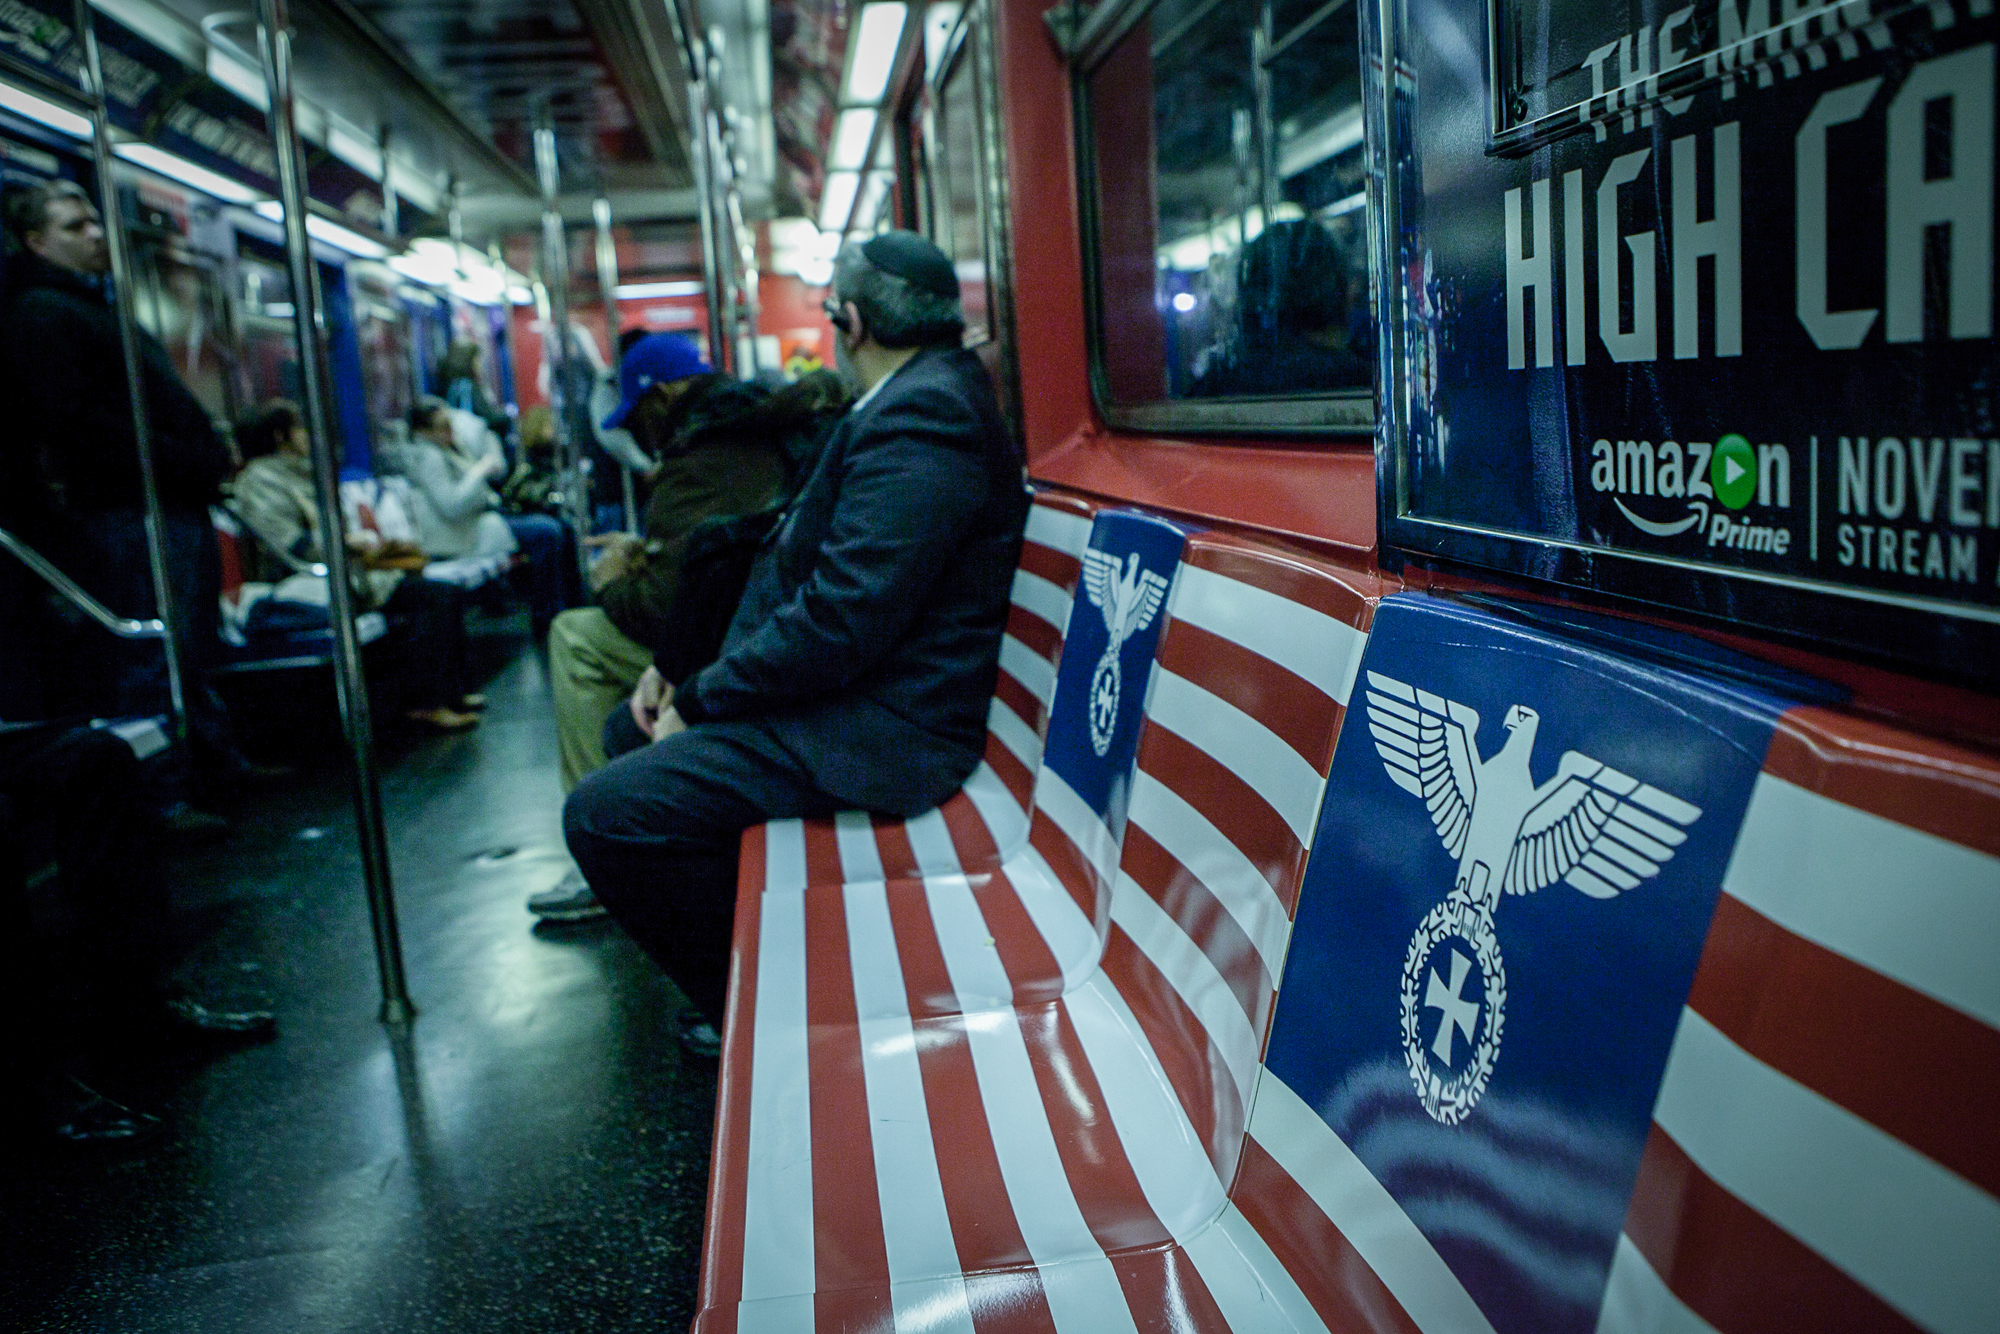 New York Amazon Promotion Covers Nyc Subway In Nazi Symbology